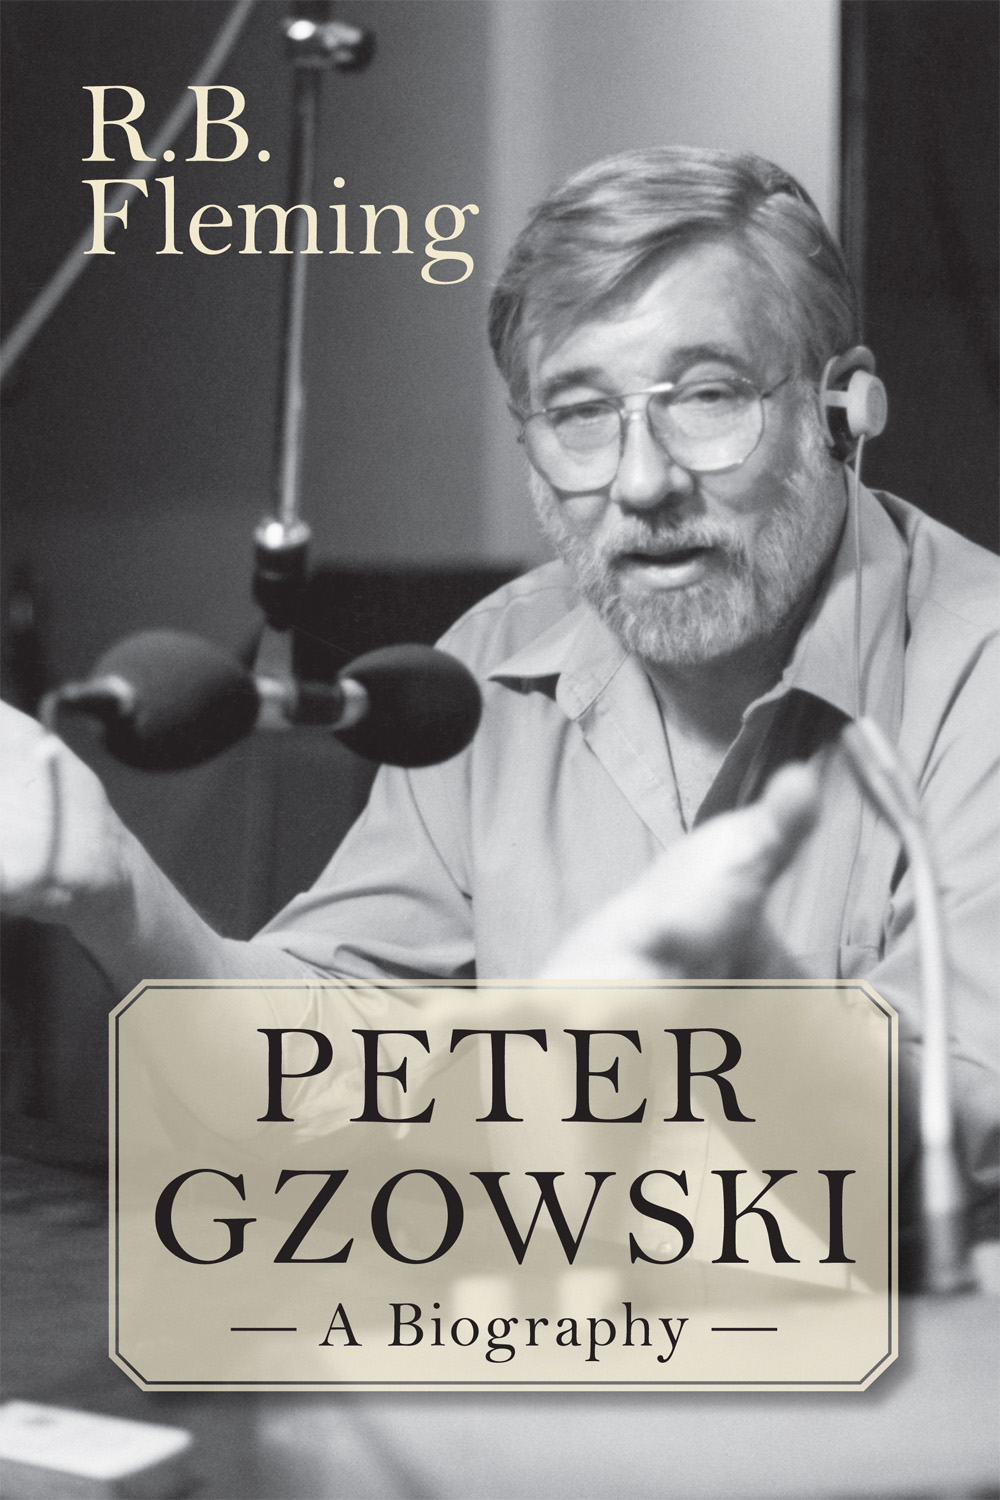 Peter Gzowski By: R.B. Fleming